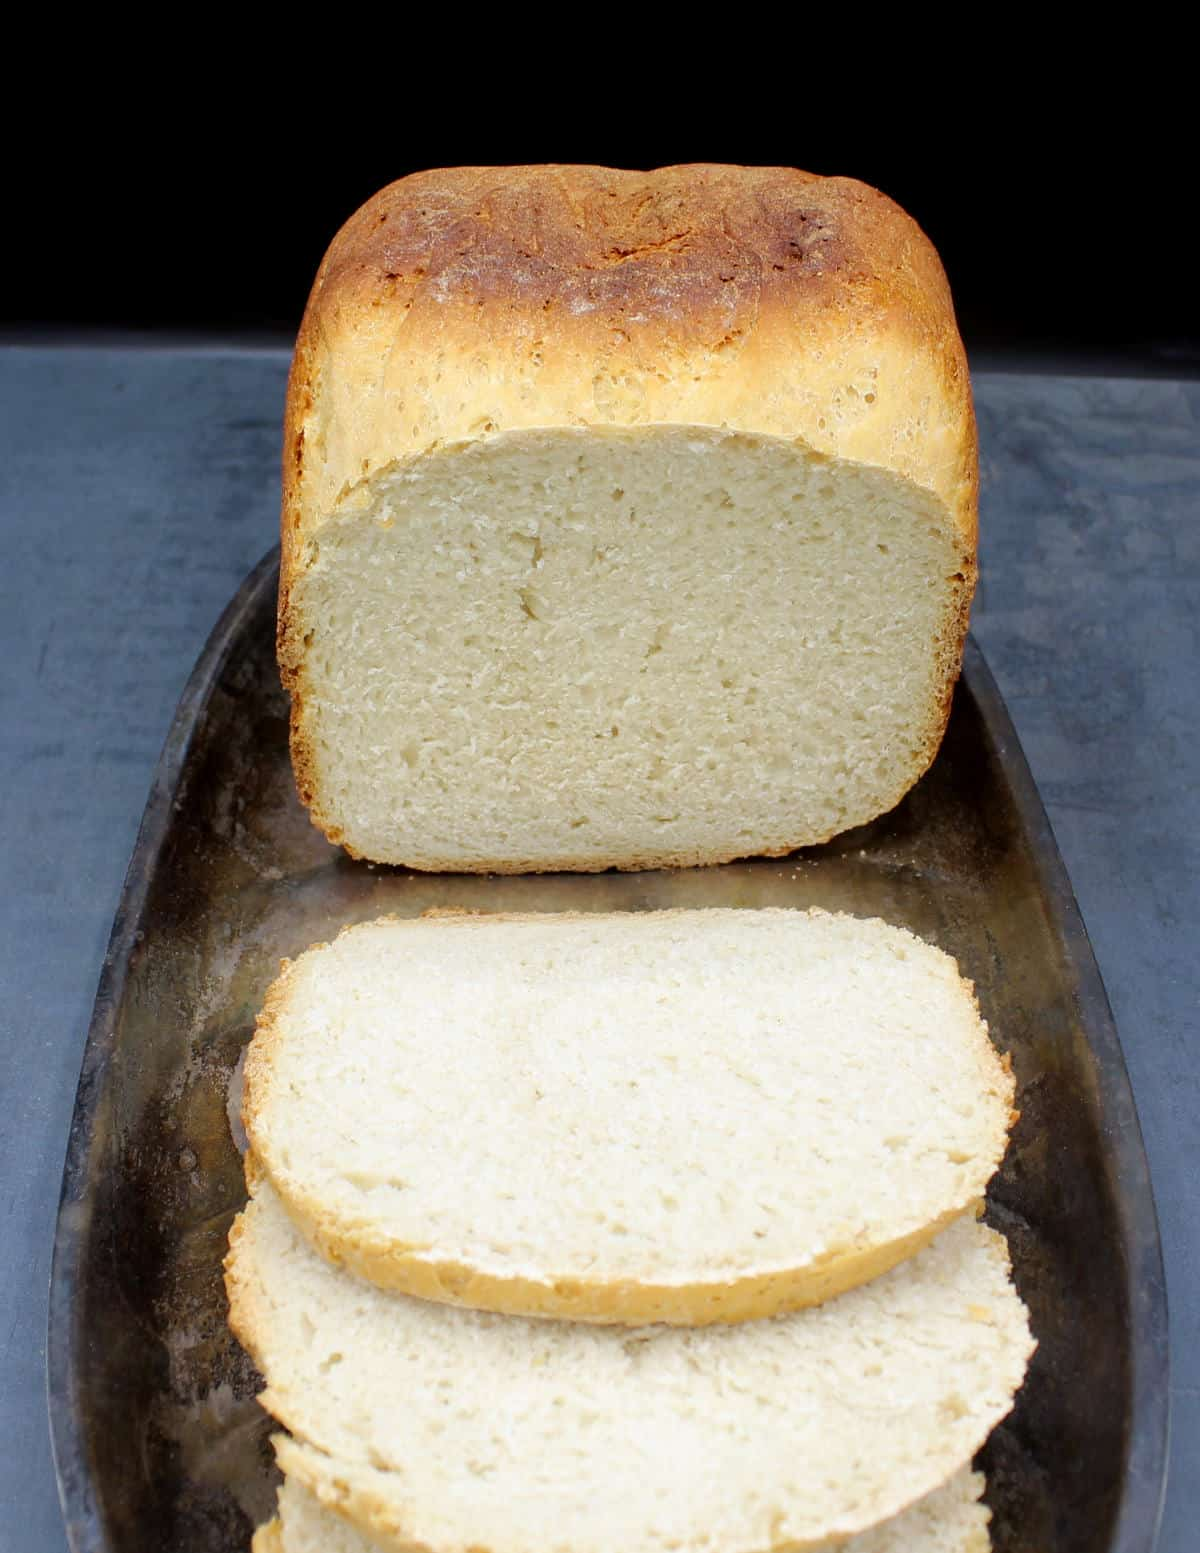 A gorgeous sourdough bread machine loaf, sliced, on a silver serving tray on a gray background.